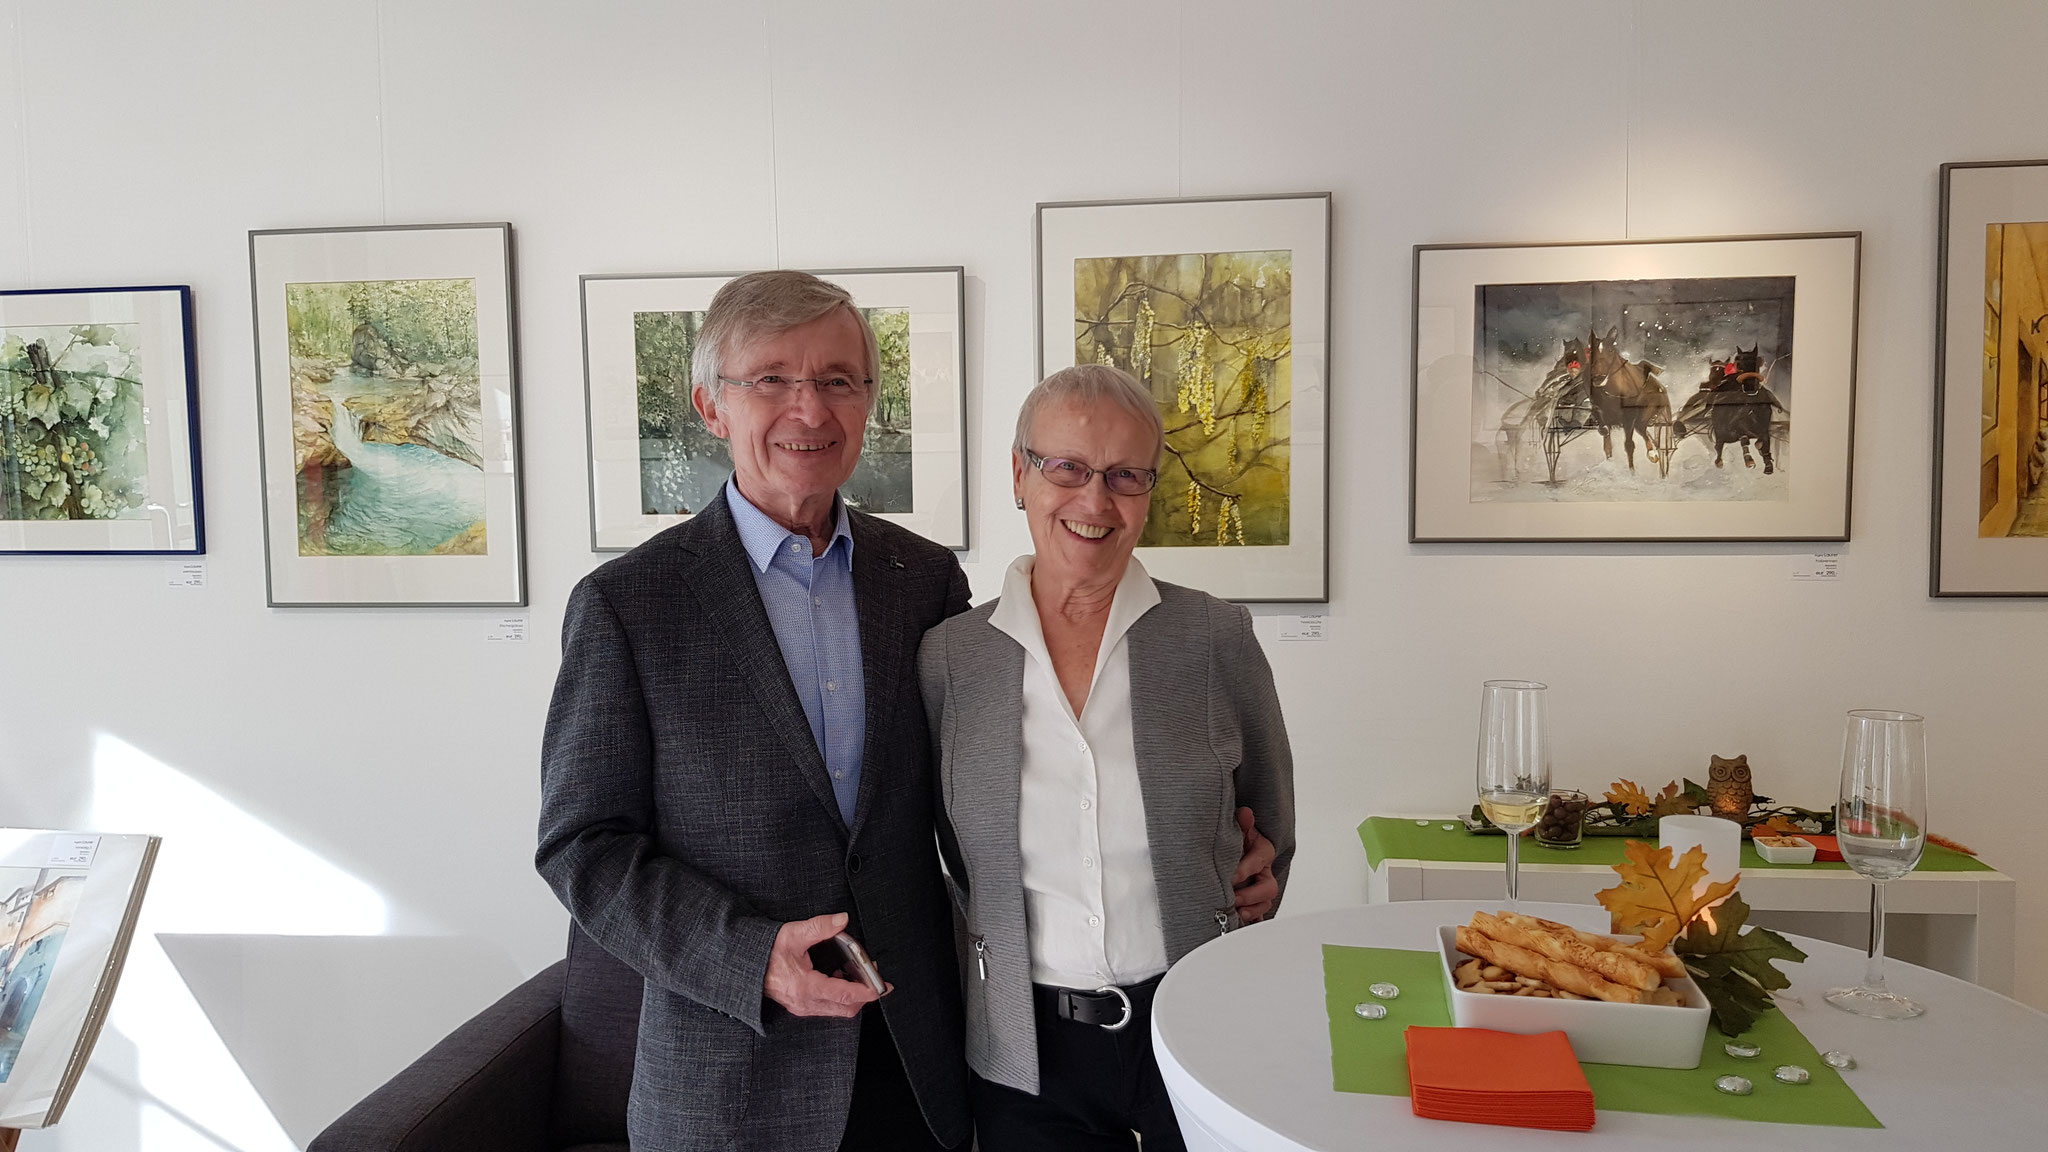 Vernissage am 20. Oktober 2019